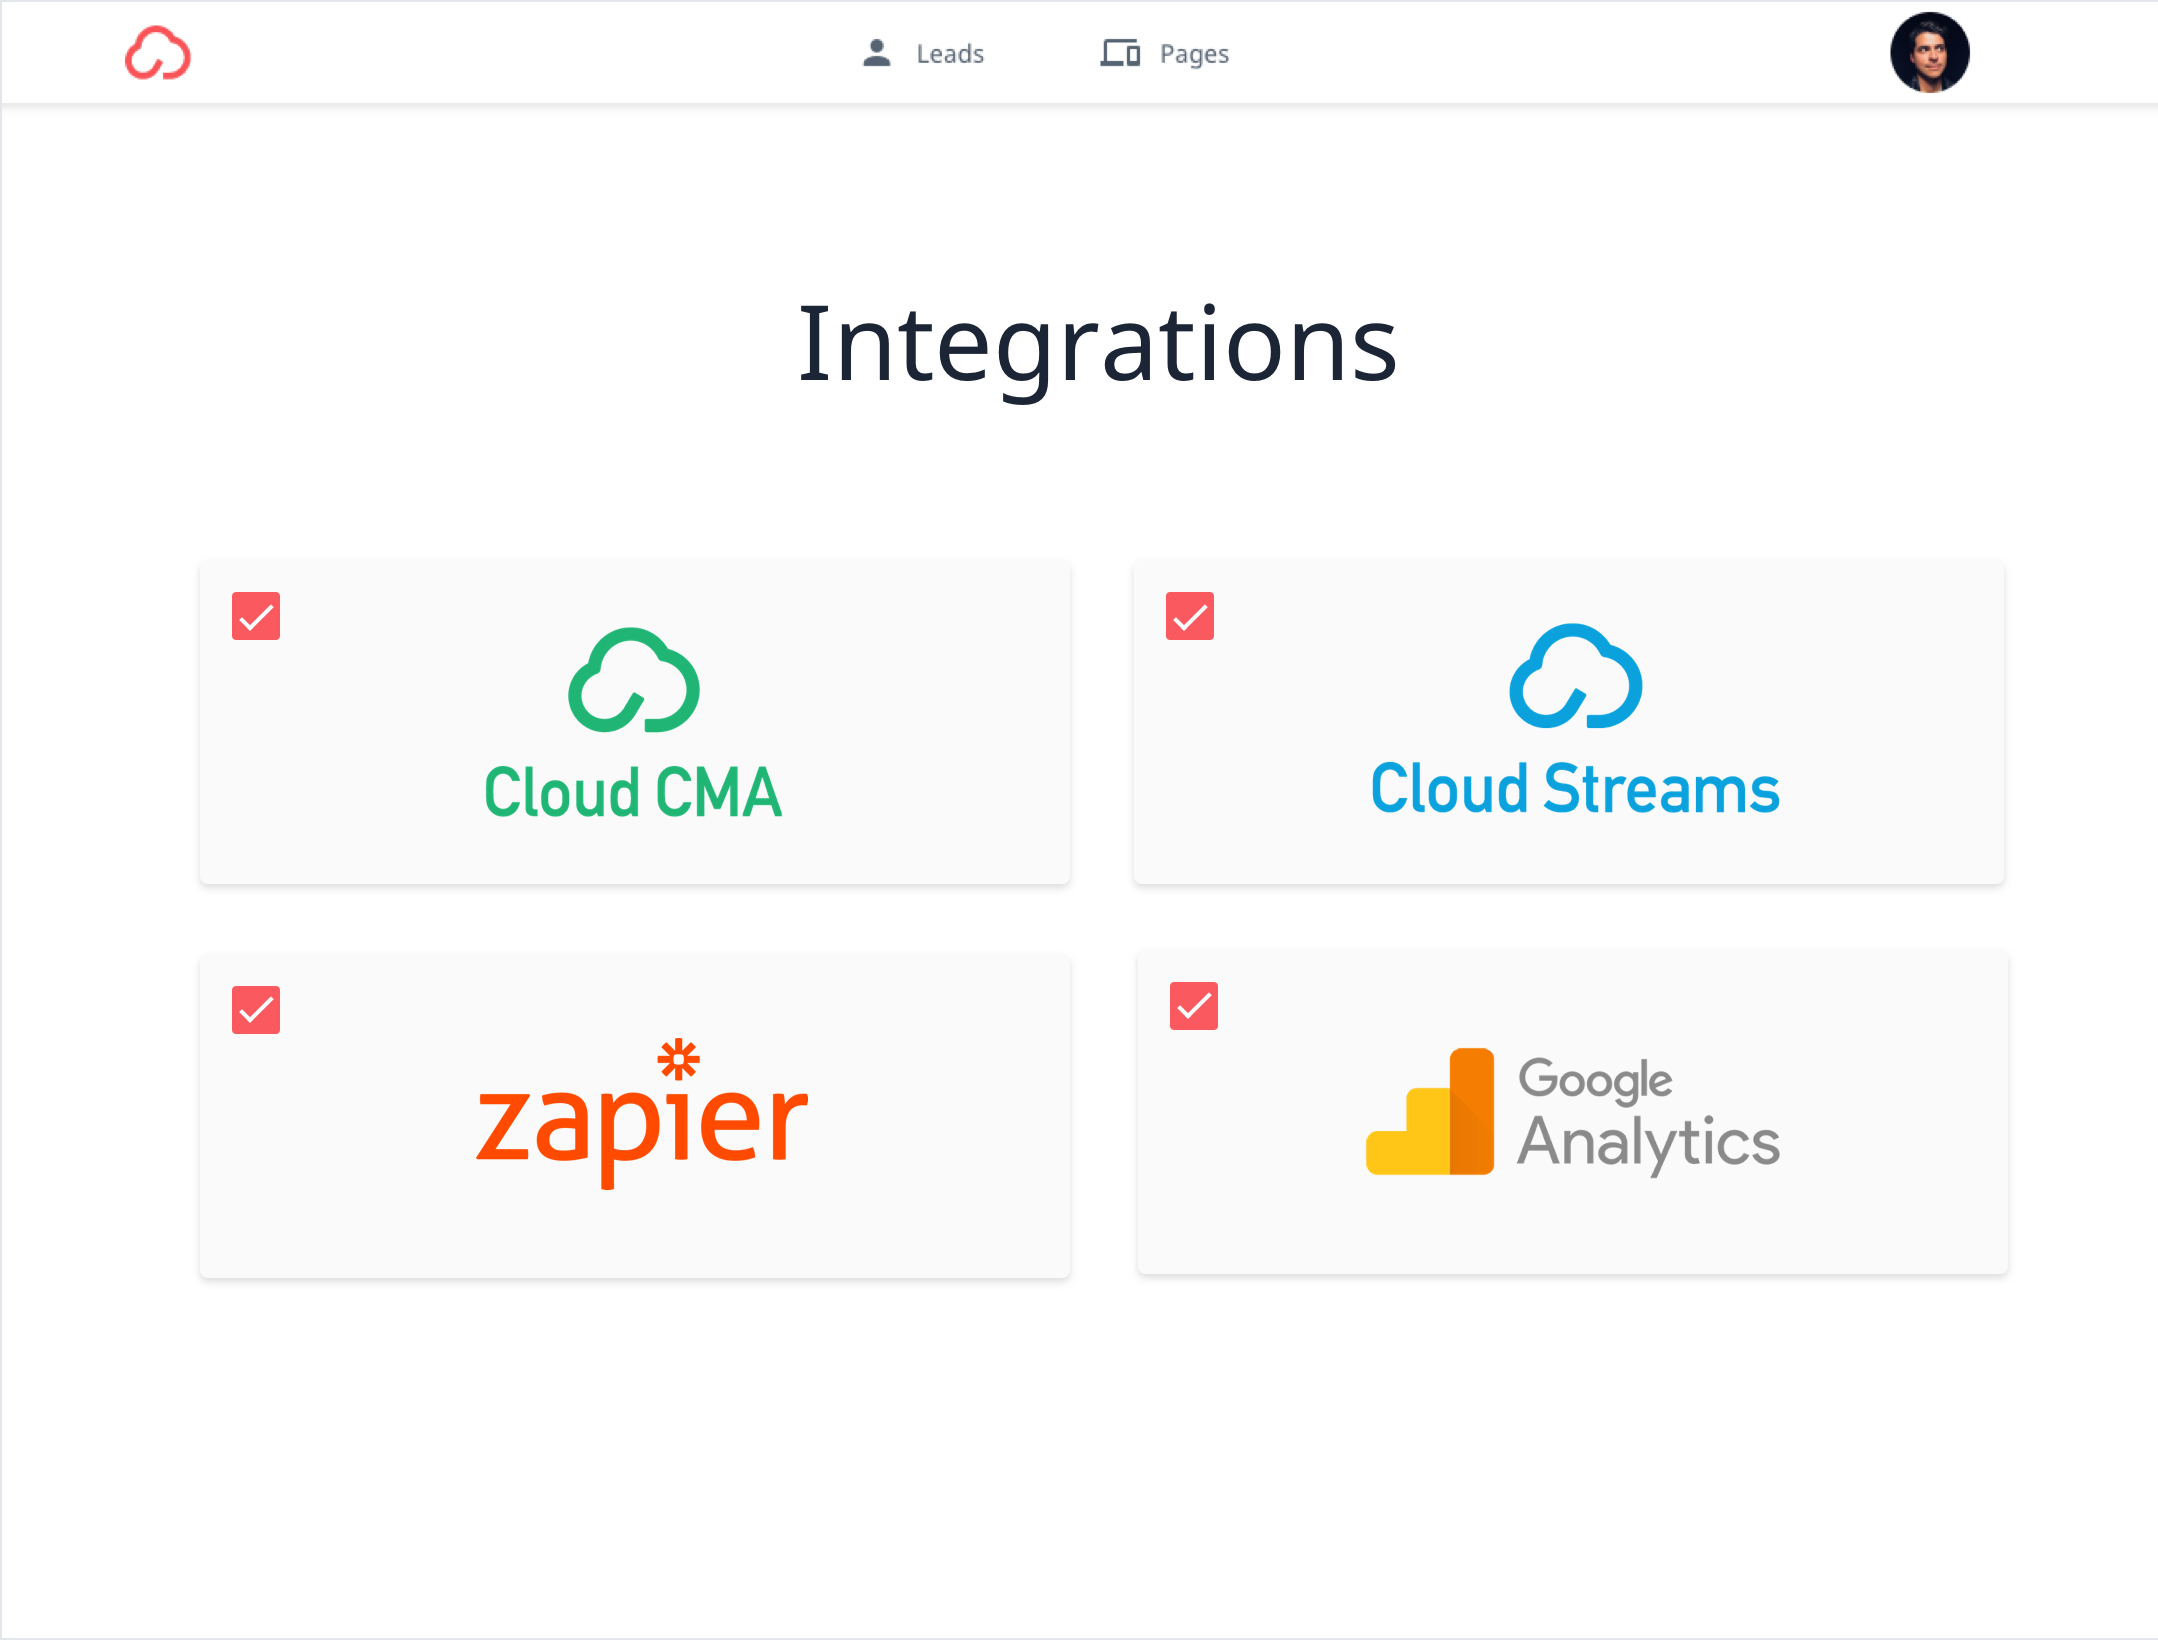 A grid of cards with red checkmarks in their top-left corner are displayed, each featuring a single integration option from among Cloud CMA, Cloud Streams, Google Analytics, and WordPress.